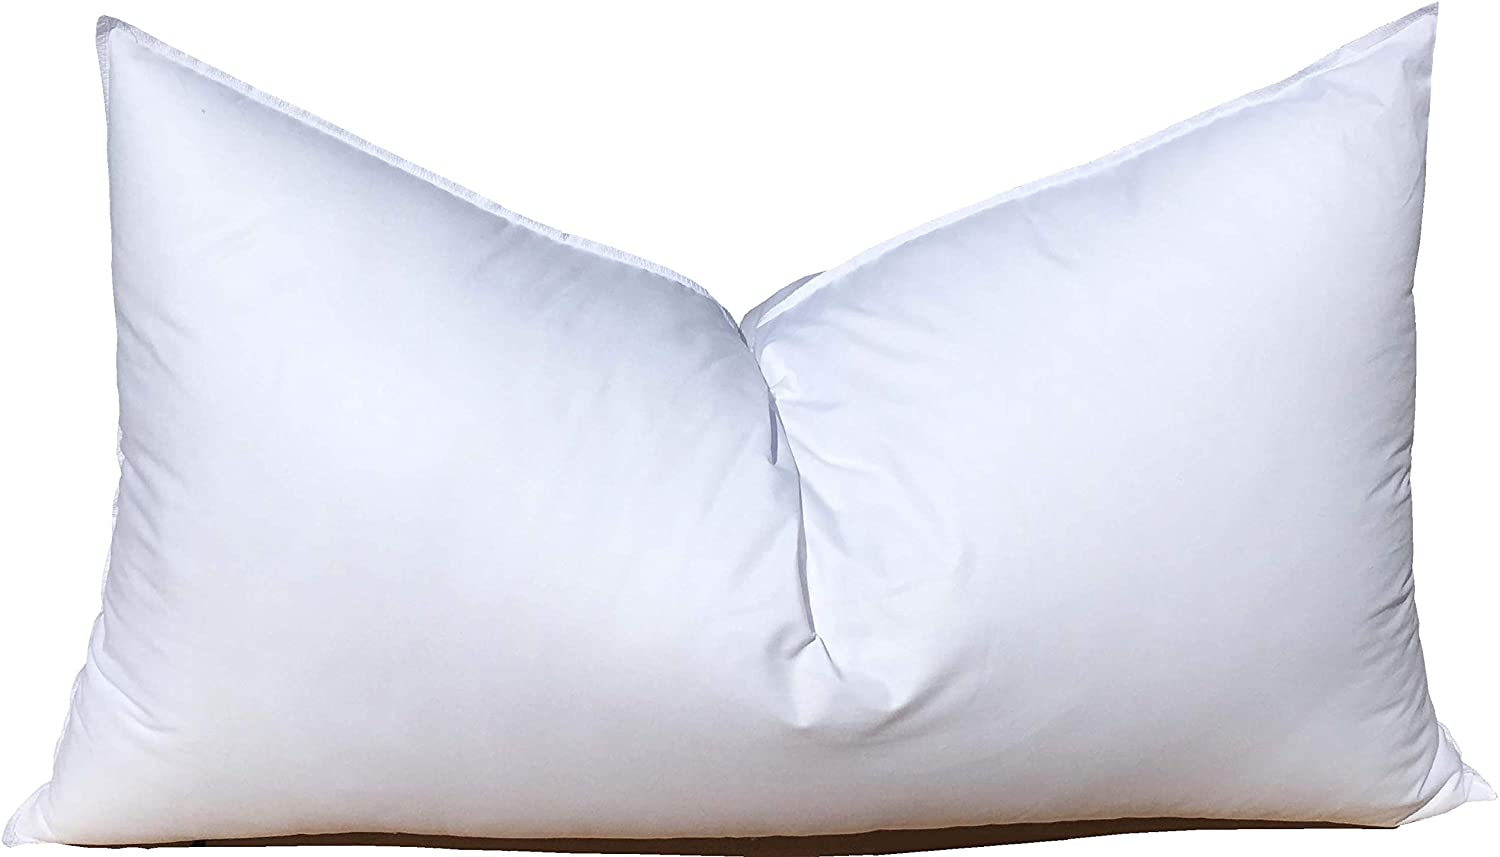 Pillowflex Synthetic Down Pillow Insert for Sham Aka Faux/Alternative (14 Inch by 36 Inch)